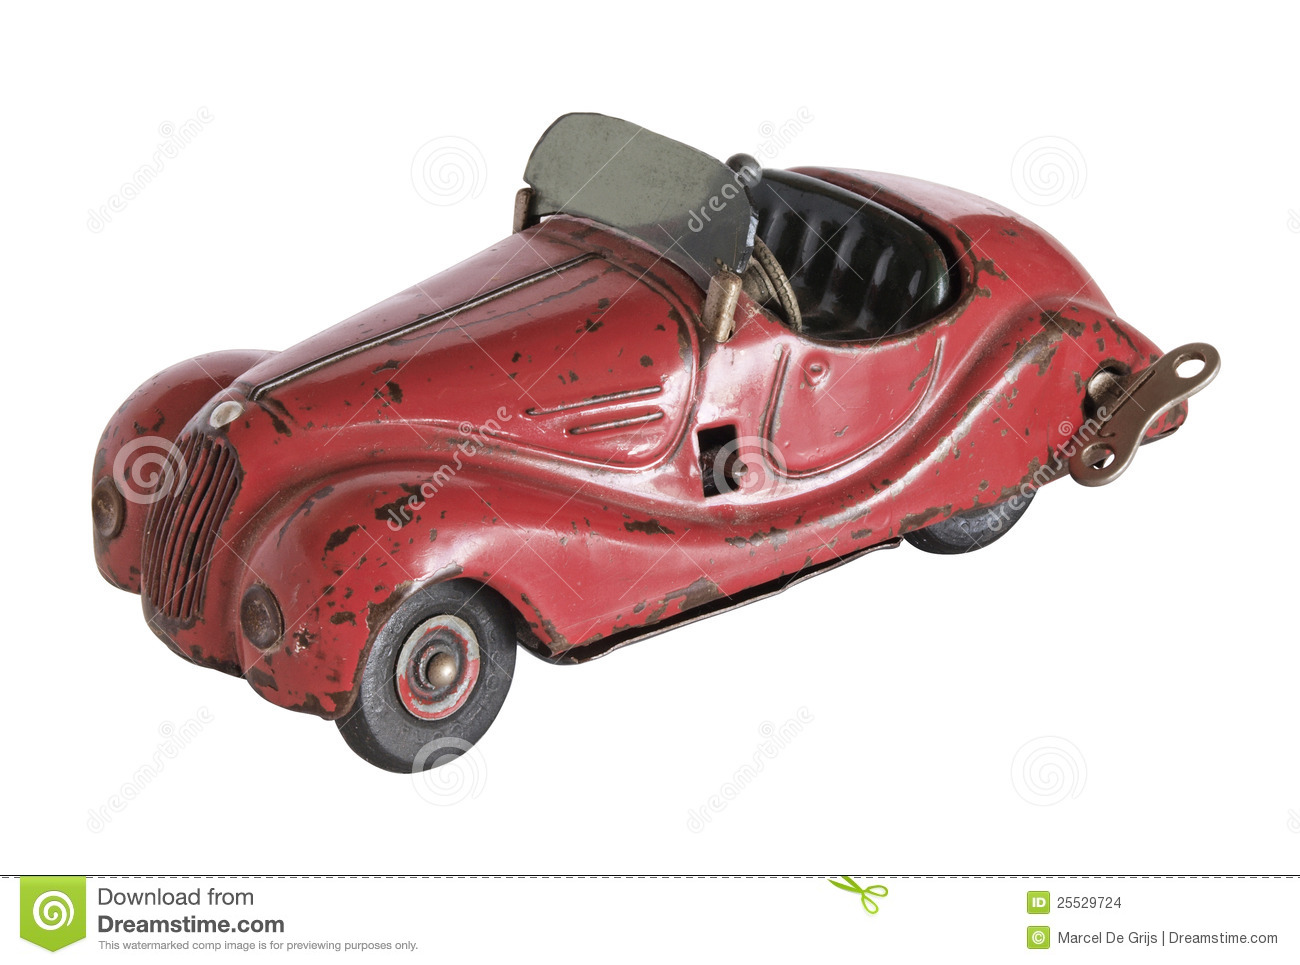 An old vintage toy car isolated on a white background.